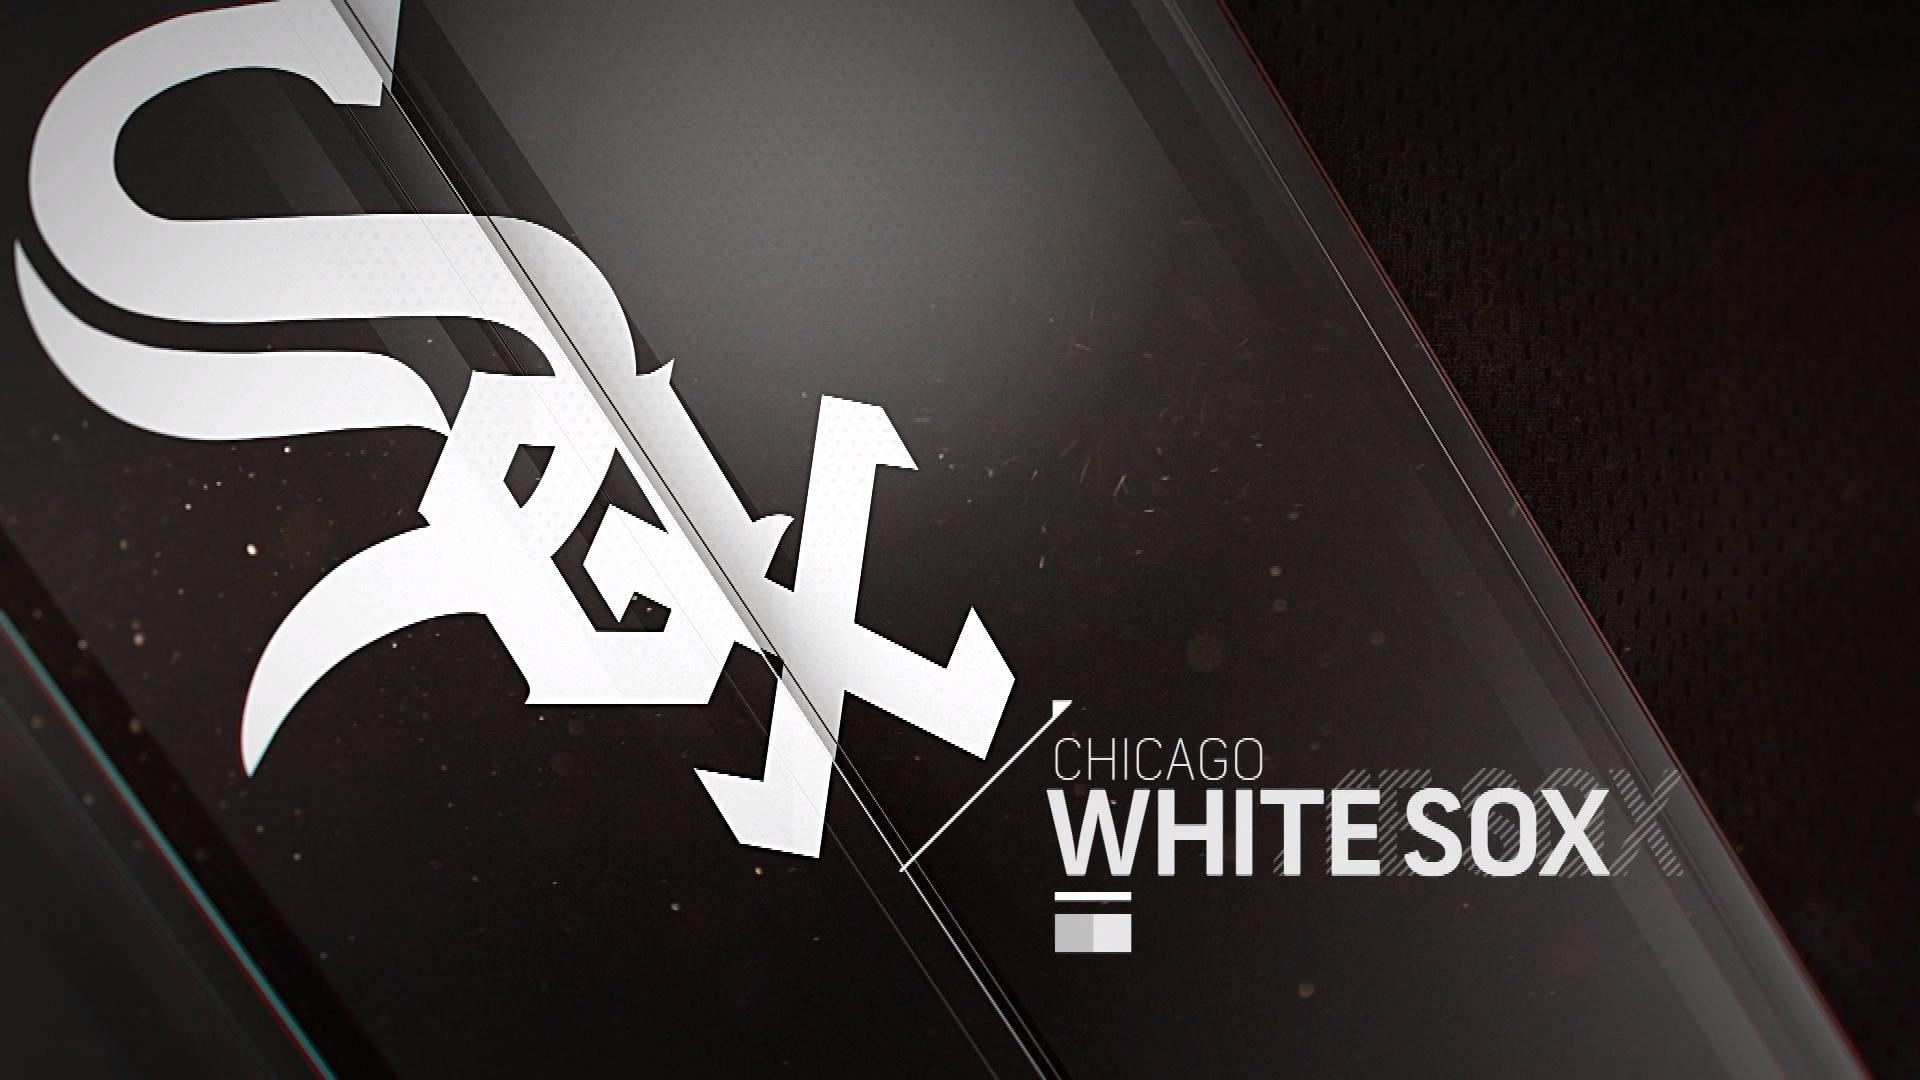 1920x1080px white sox background wallpaper free by Page Leapman